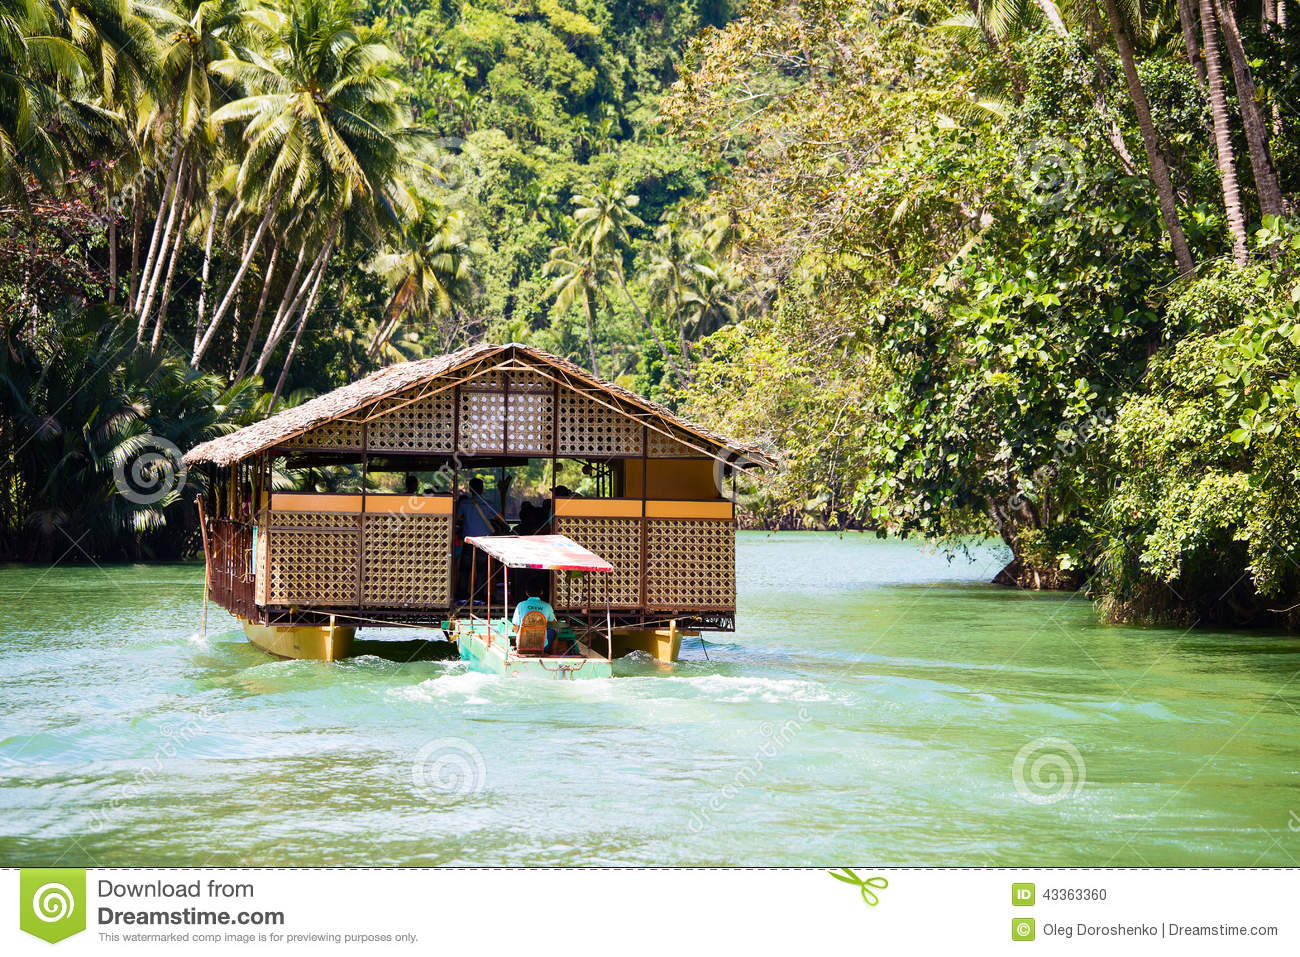 Exotic Cruise Boat With Tourists On A Jungle River. Island Bohol, Philippines. Editorial Image ...